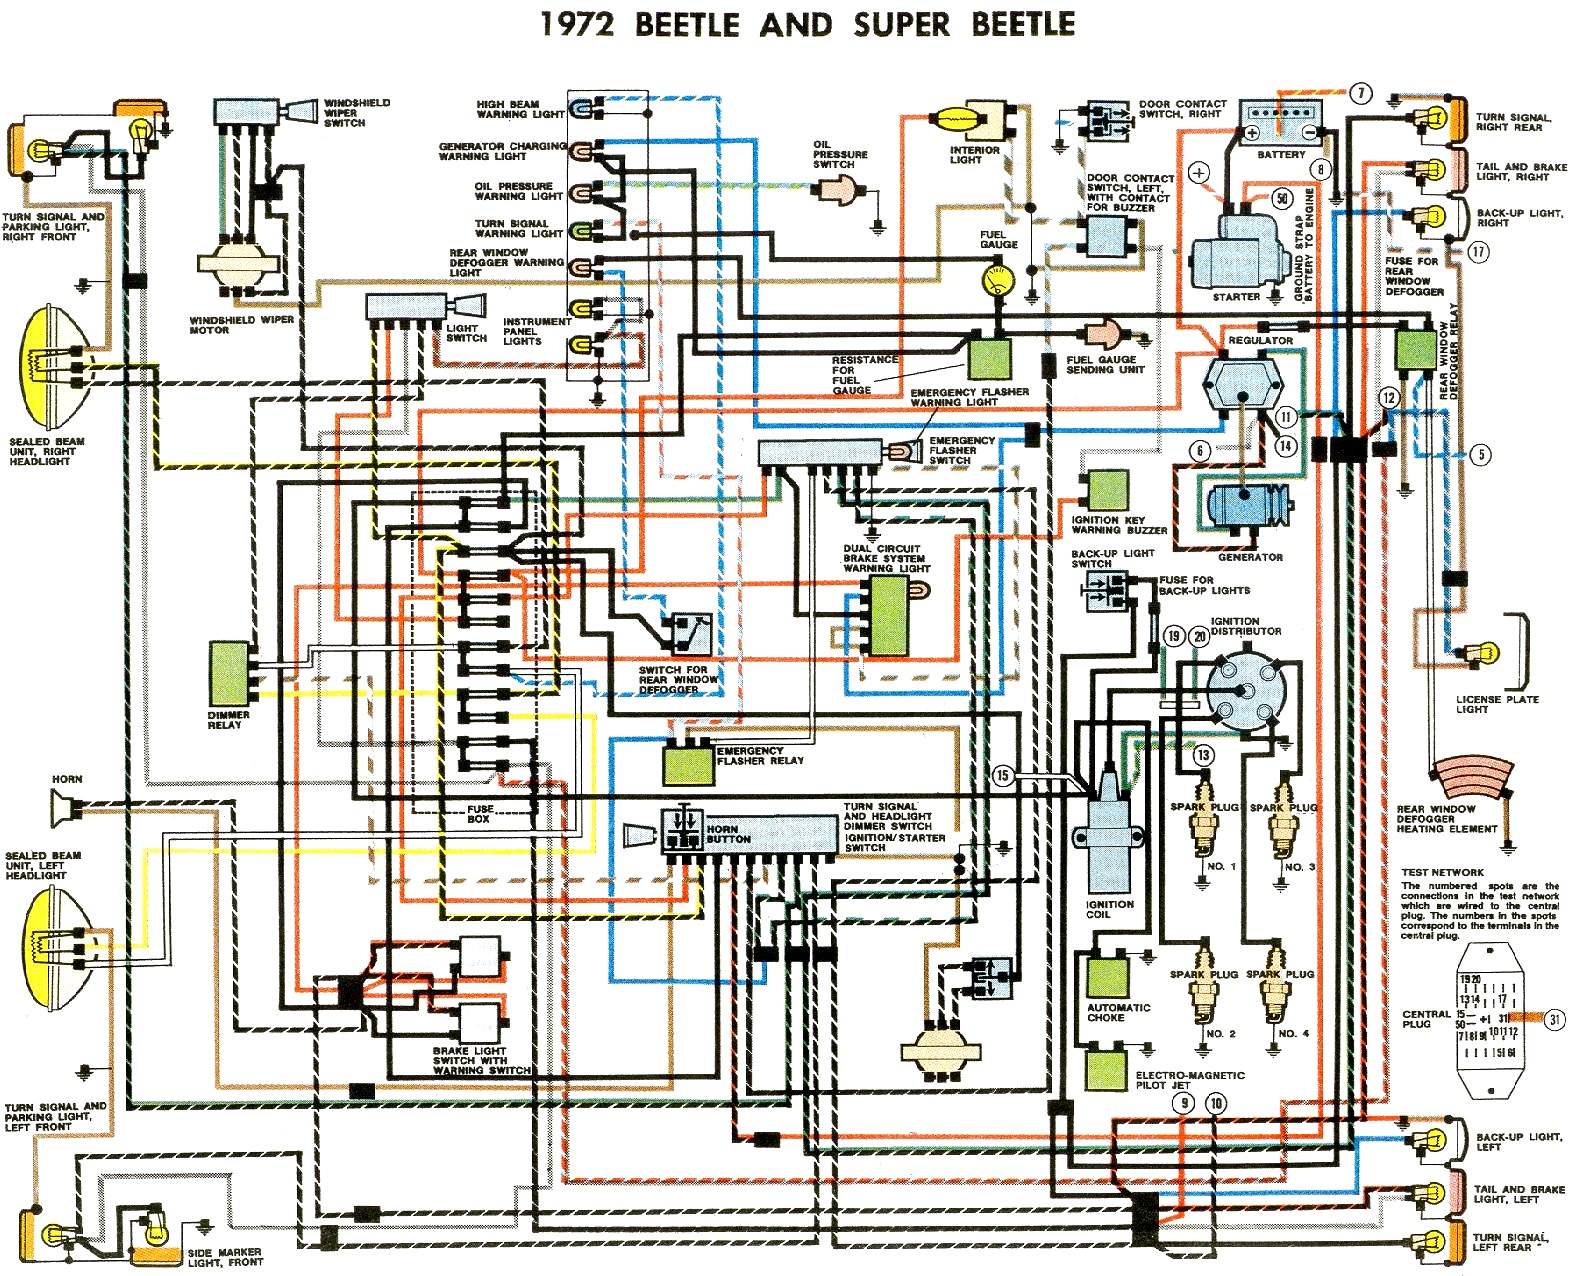 Wiring Diagram For 1975 Vw Beetle : Beetle wiring diagram thegoldenbug